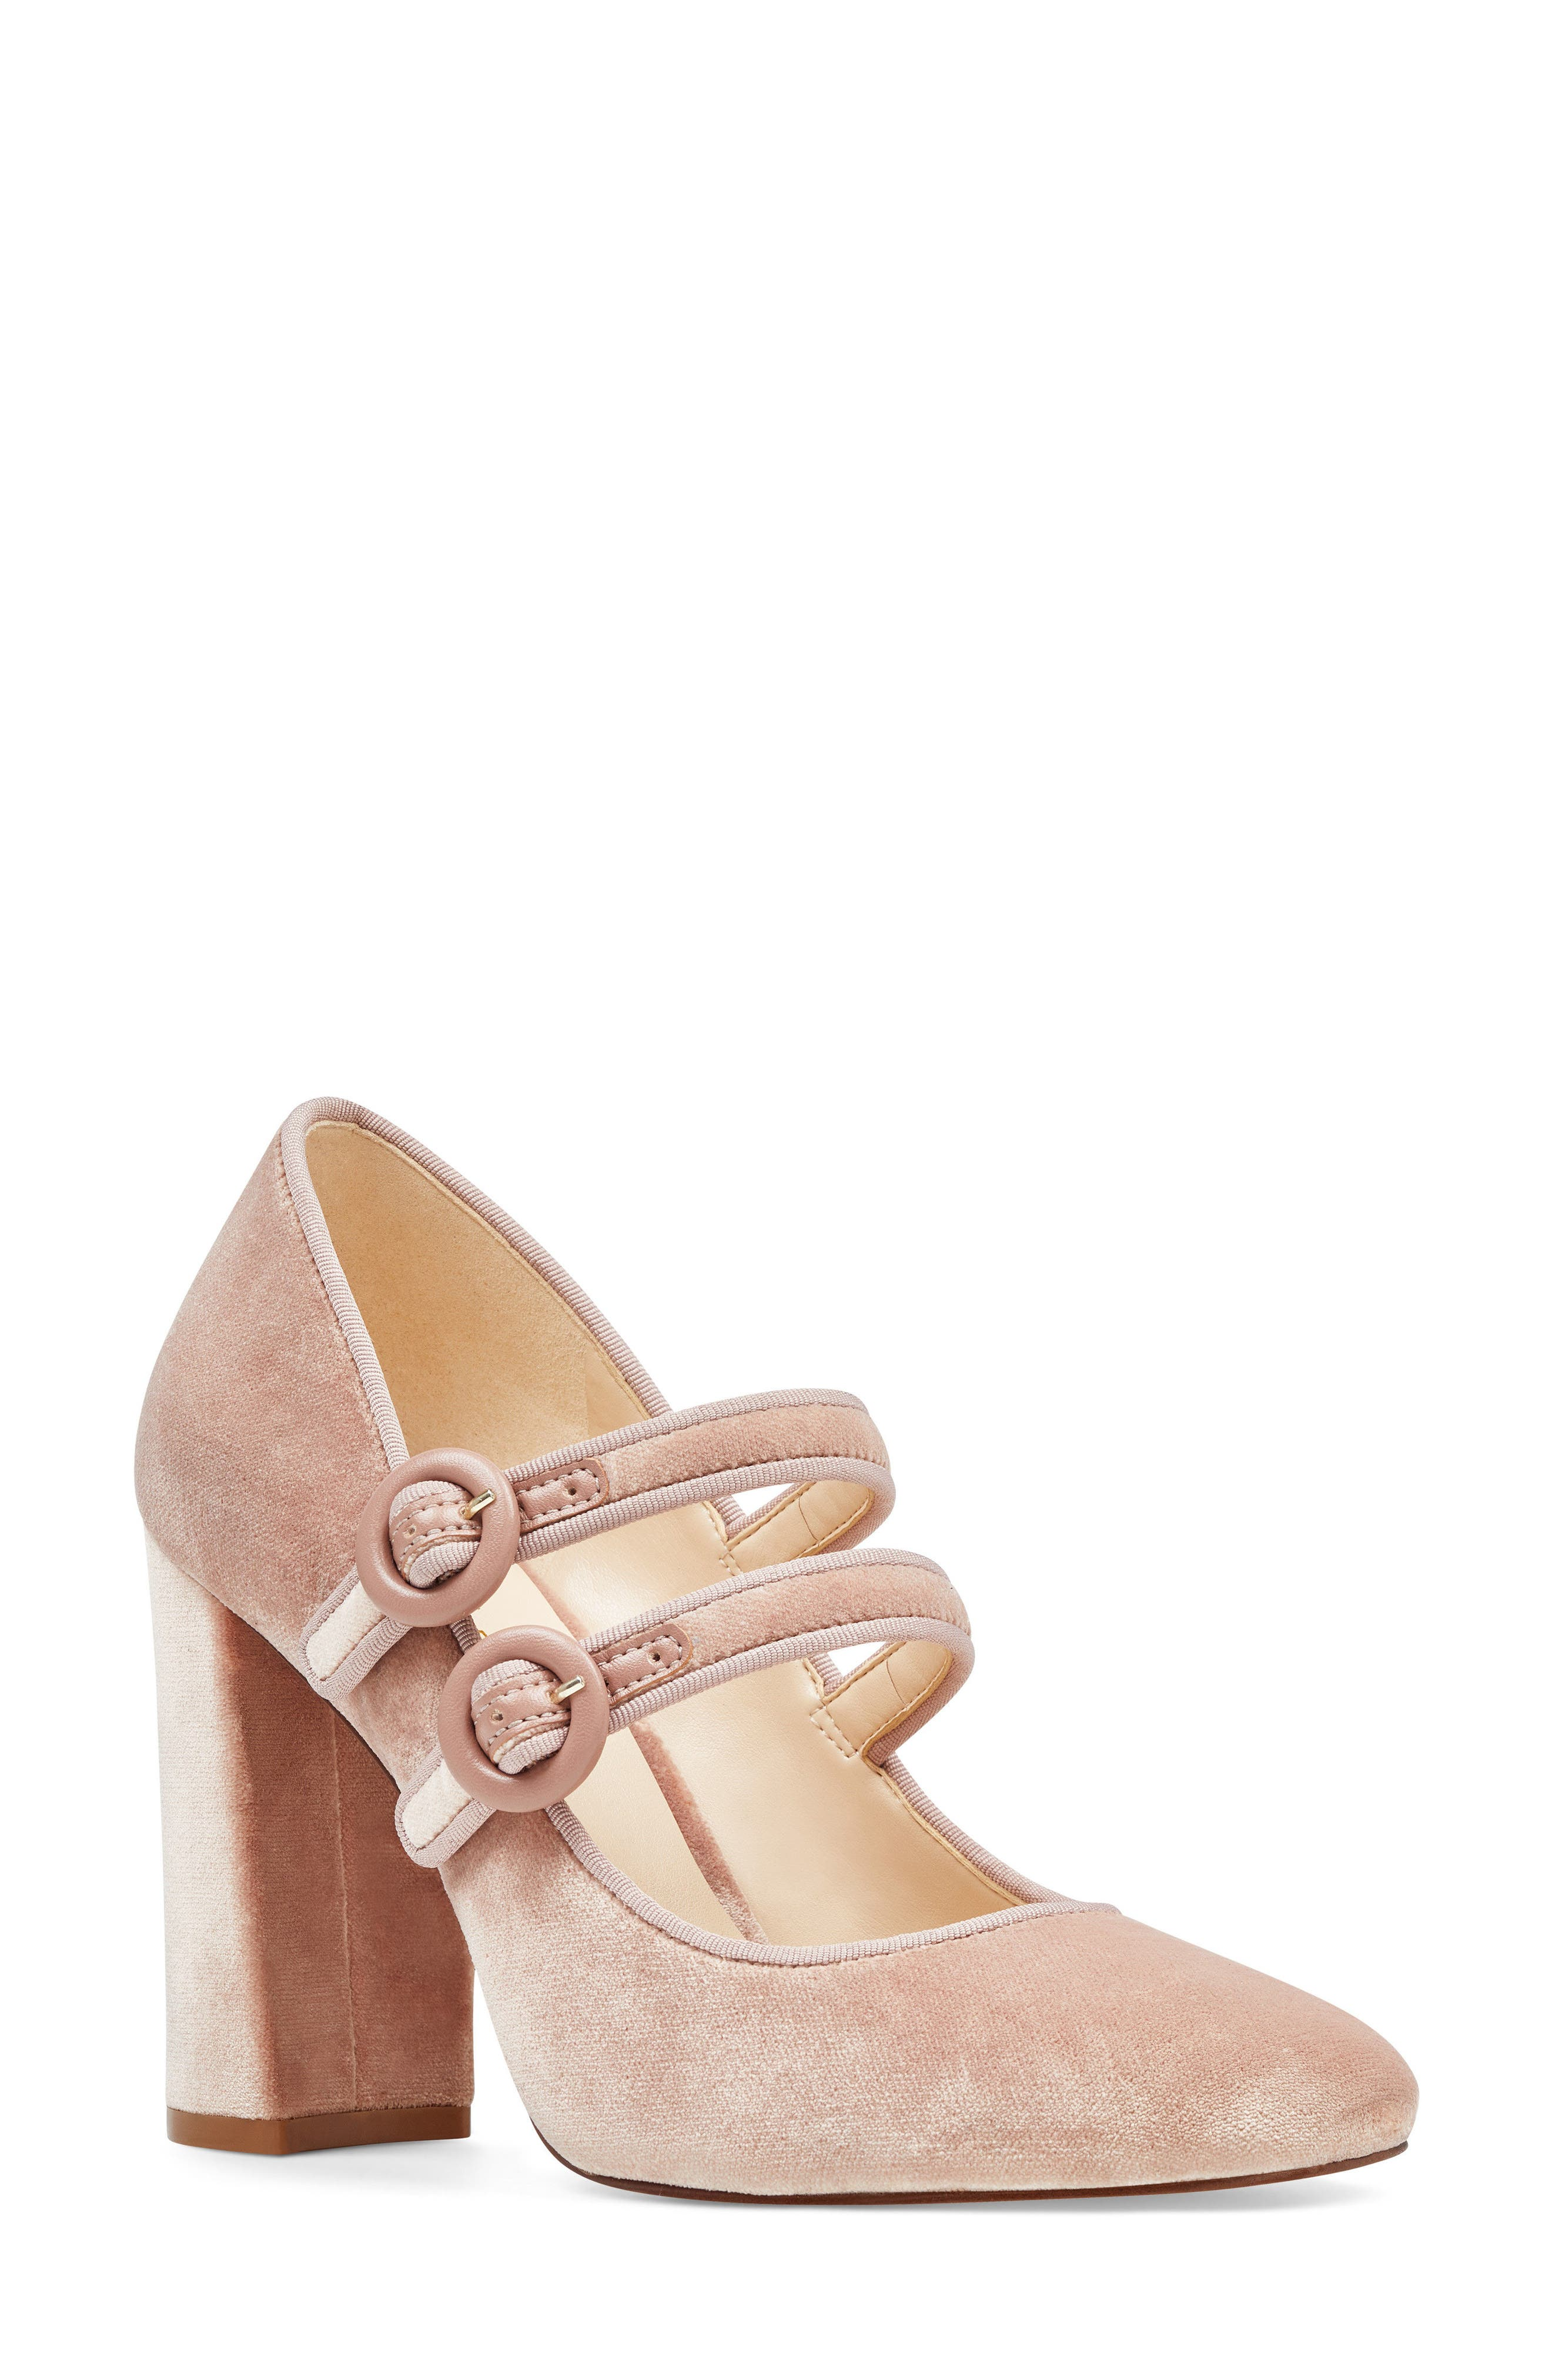 Dabney Double Strap Mary Jane Pump,                             Main thumbnail 3, color,